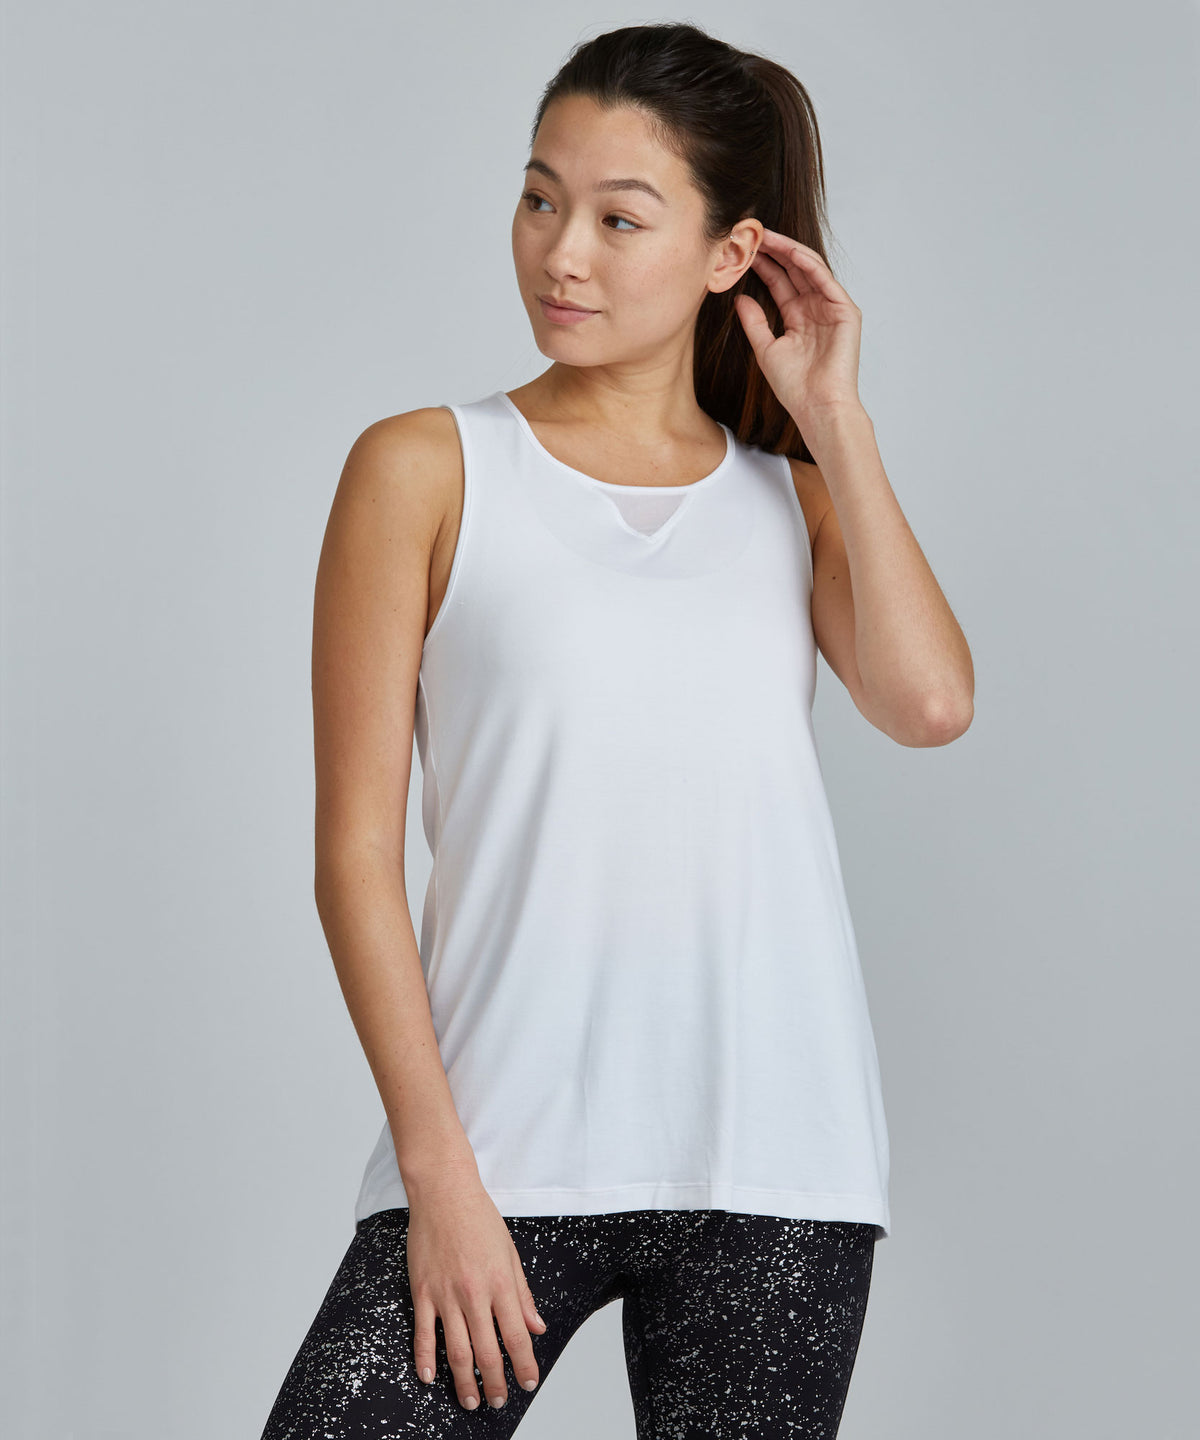 Jazz Top - White White Jazz Top - Women's Activewear Tank Top by PRISMSPORT